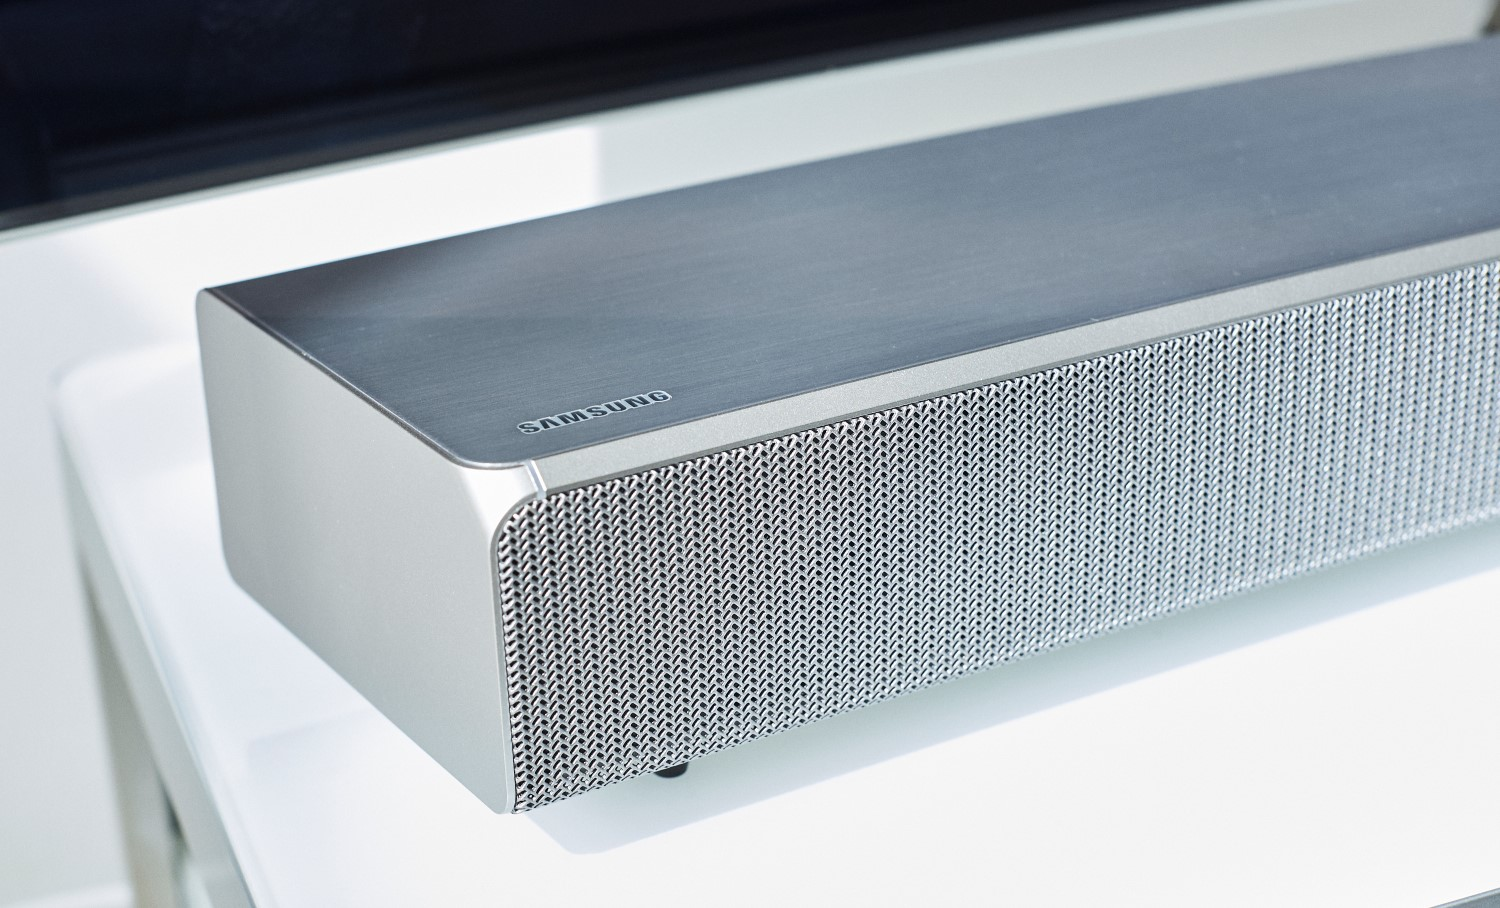 samsungs sound and soundbar side and front view